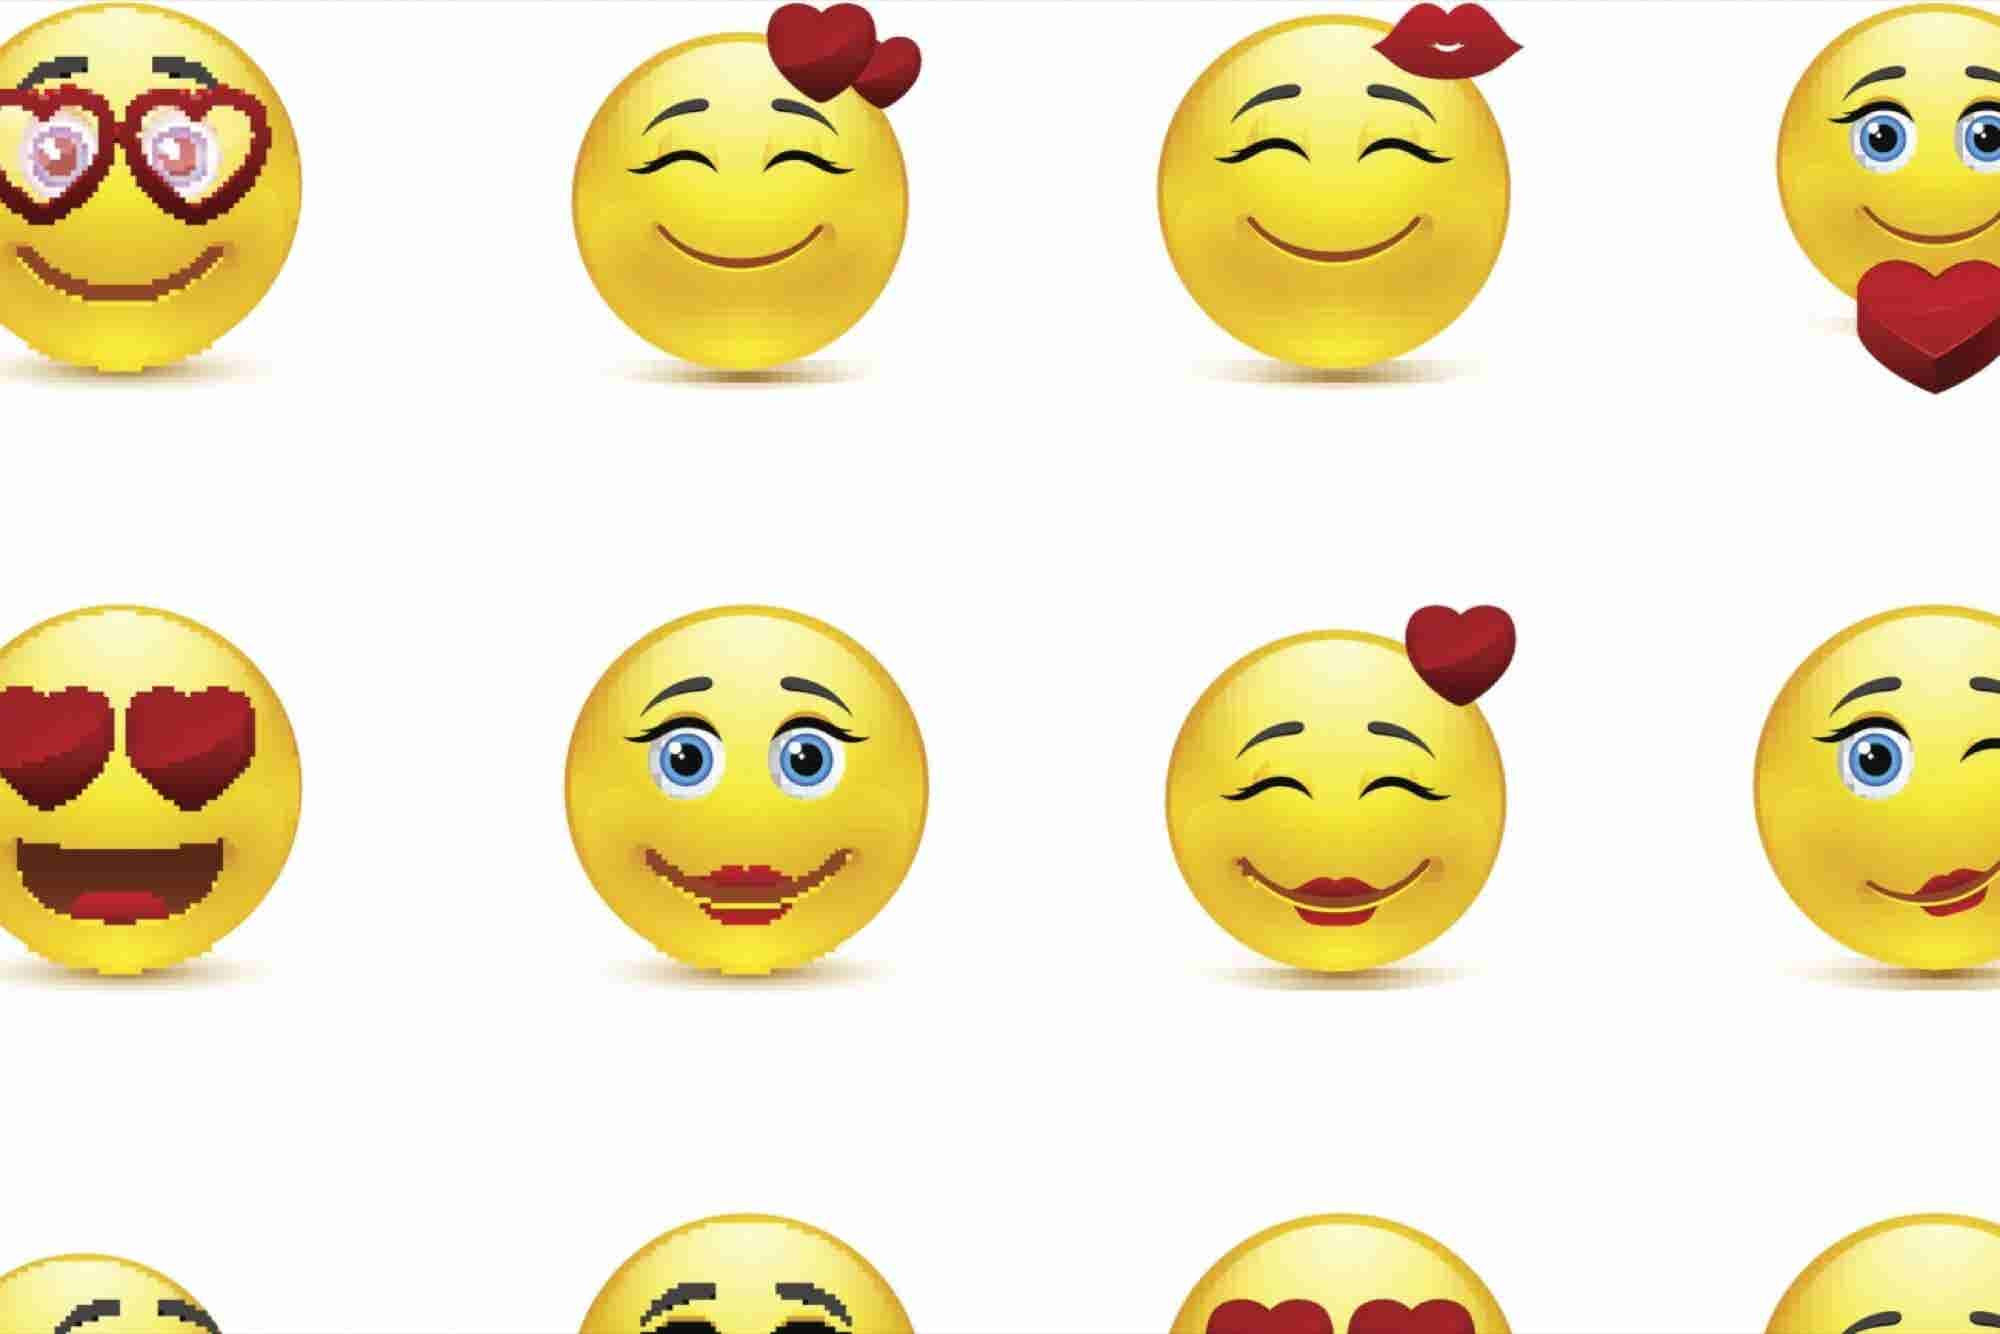 Want a More Progressive Portrayal of Women? Consider the Lowly Emoticon.